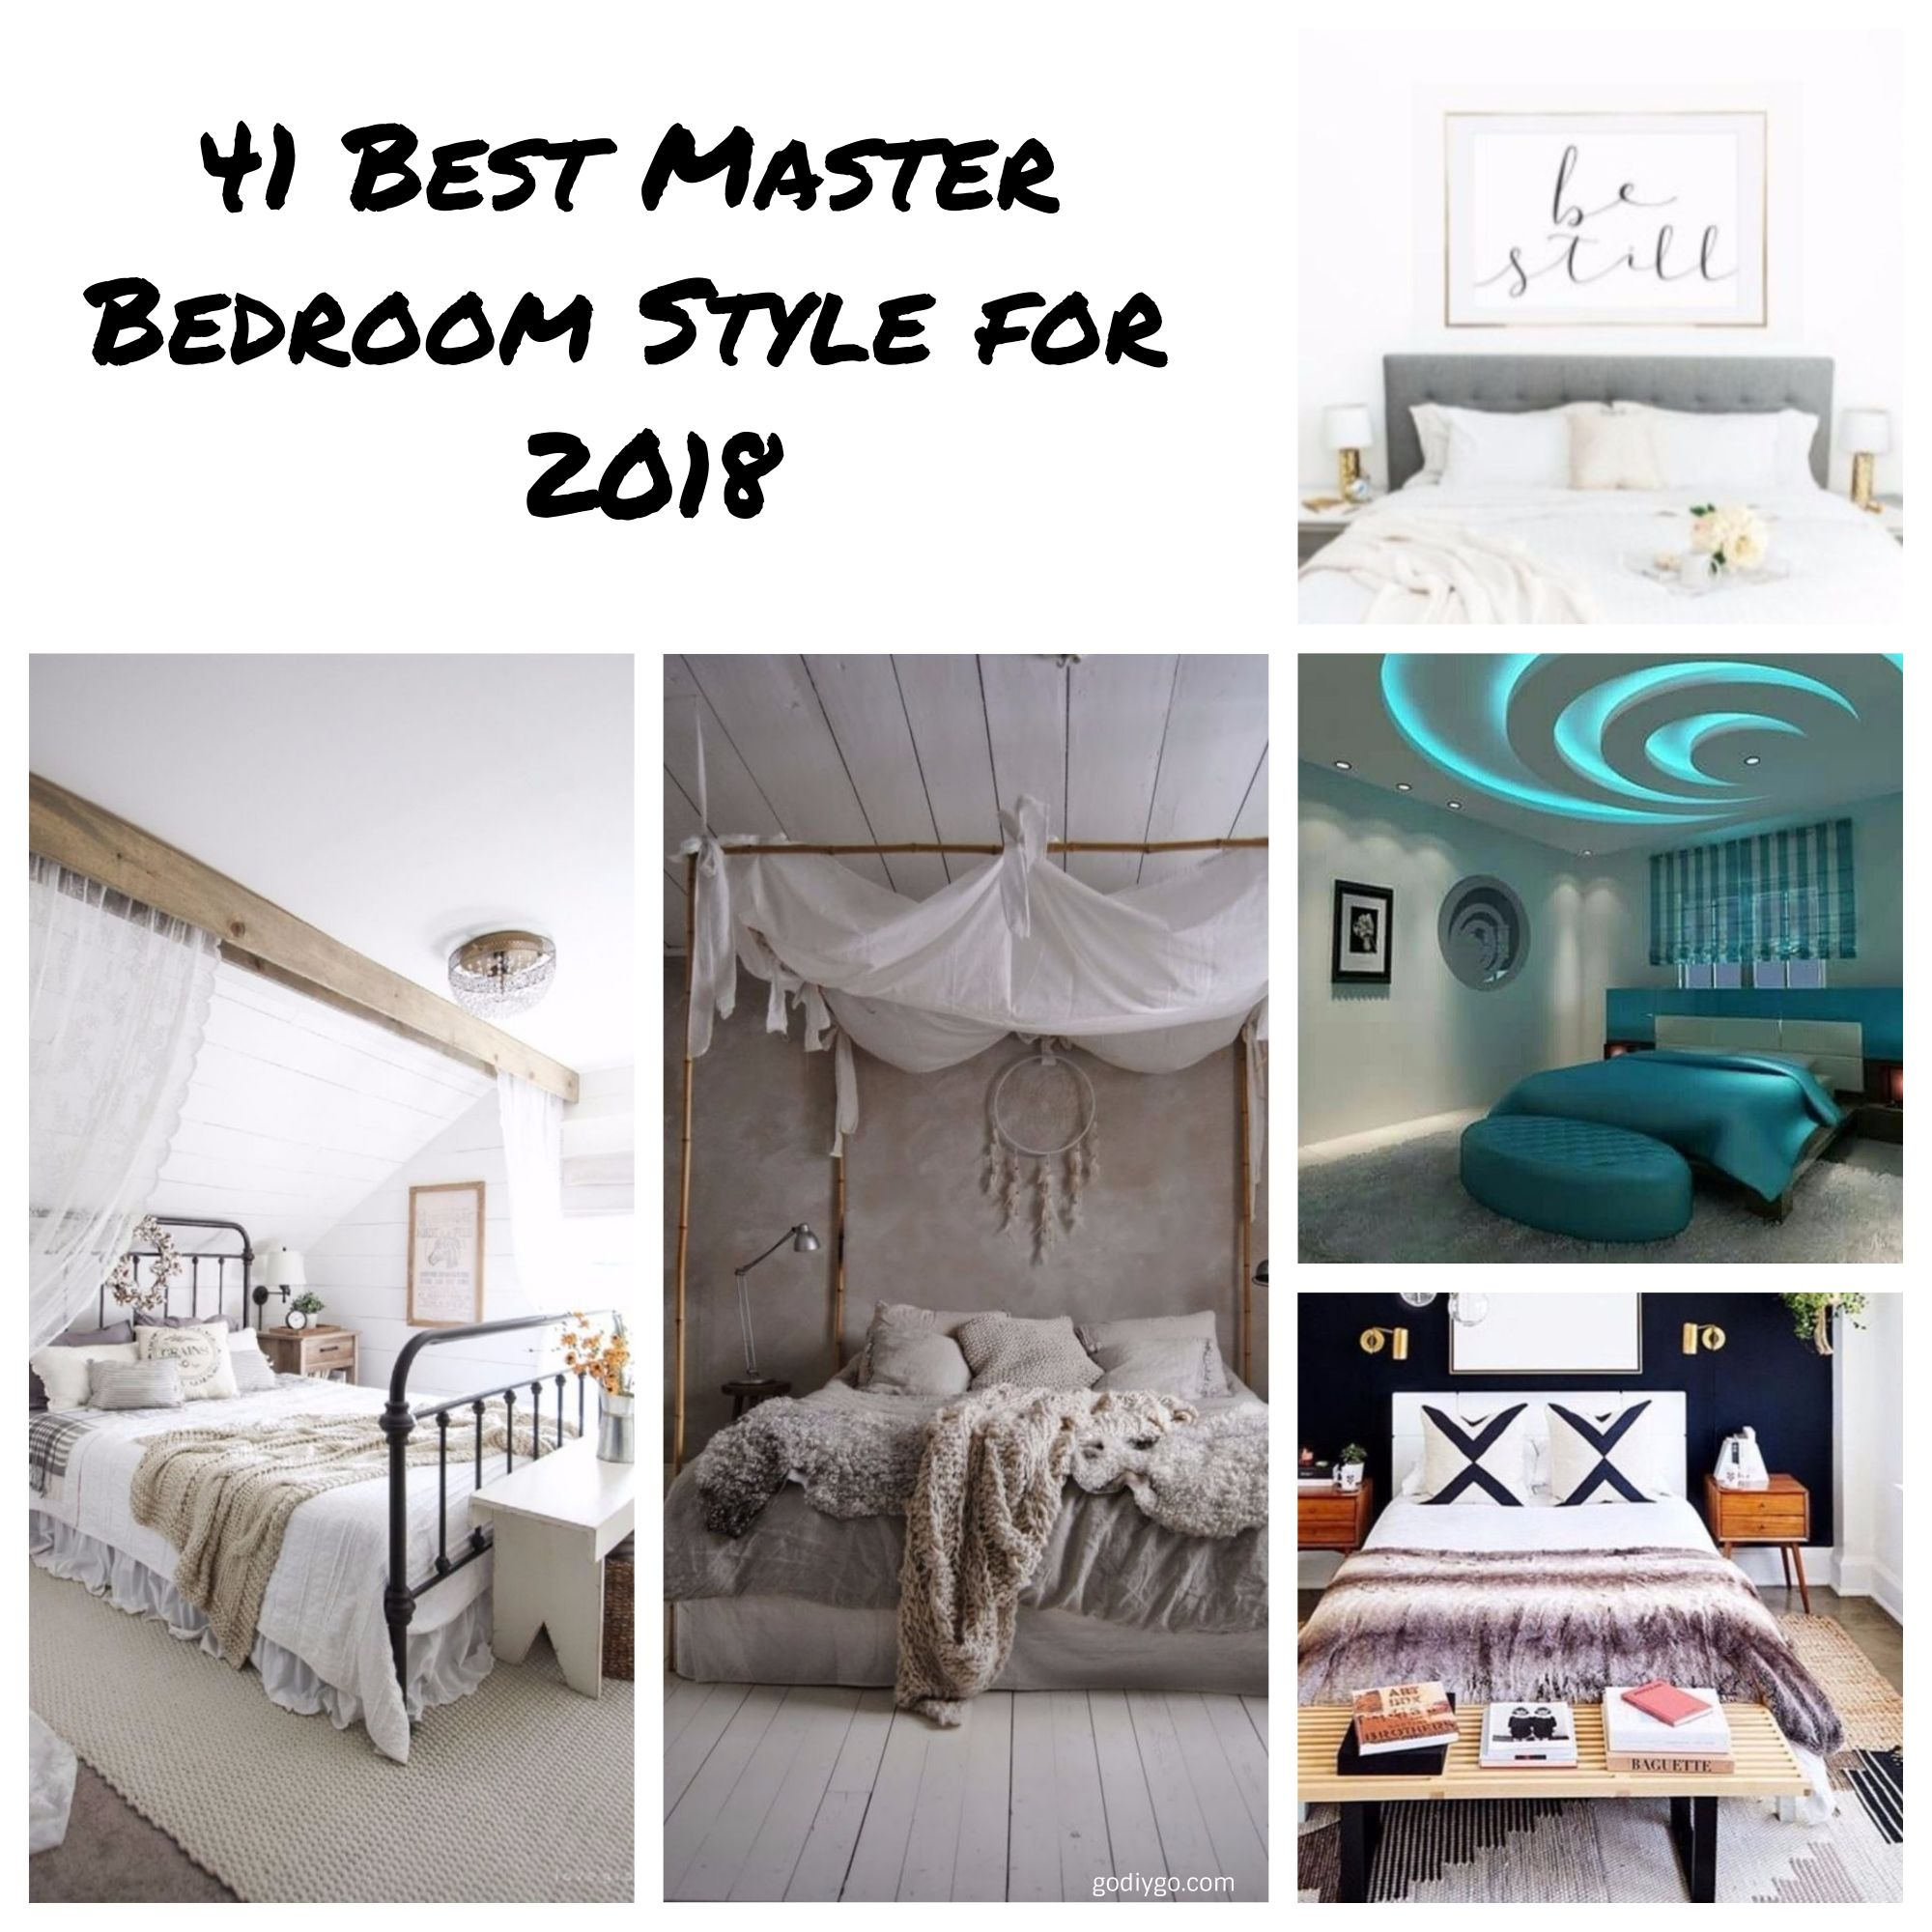 Master bedroom images   Best Master Bedroom Style for   Master bedroom Bedrooms and